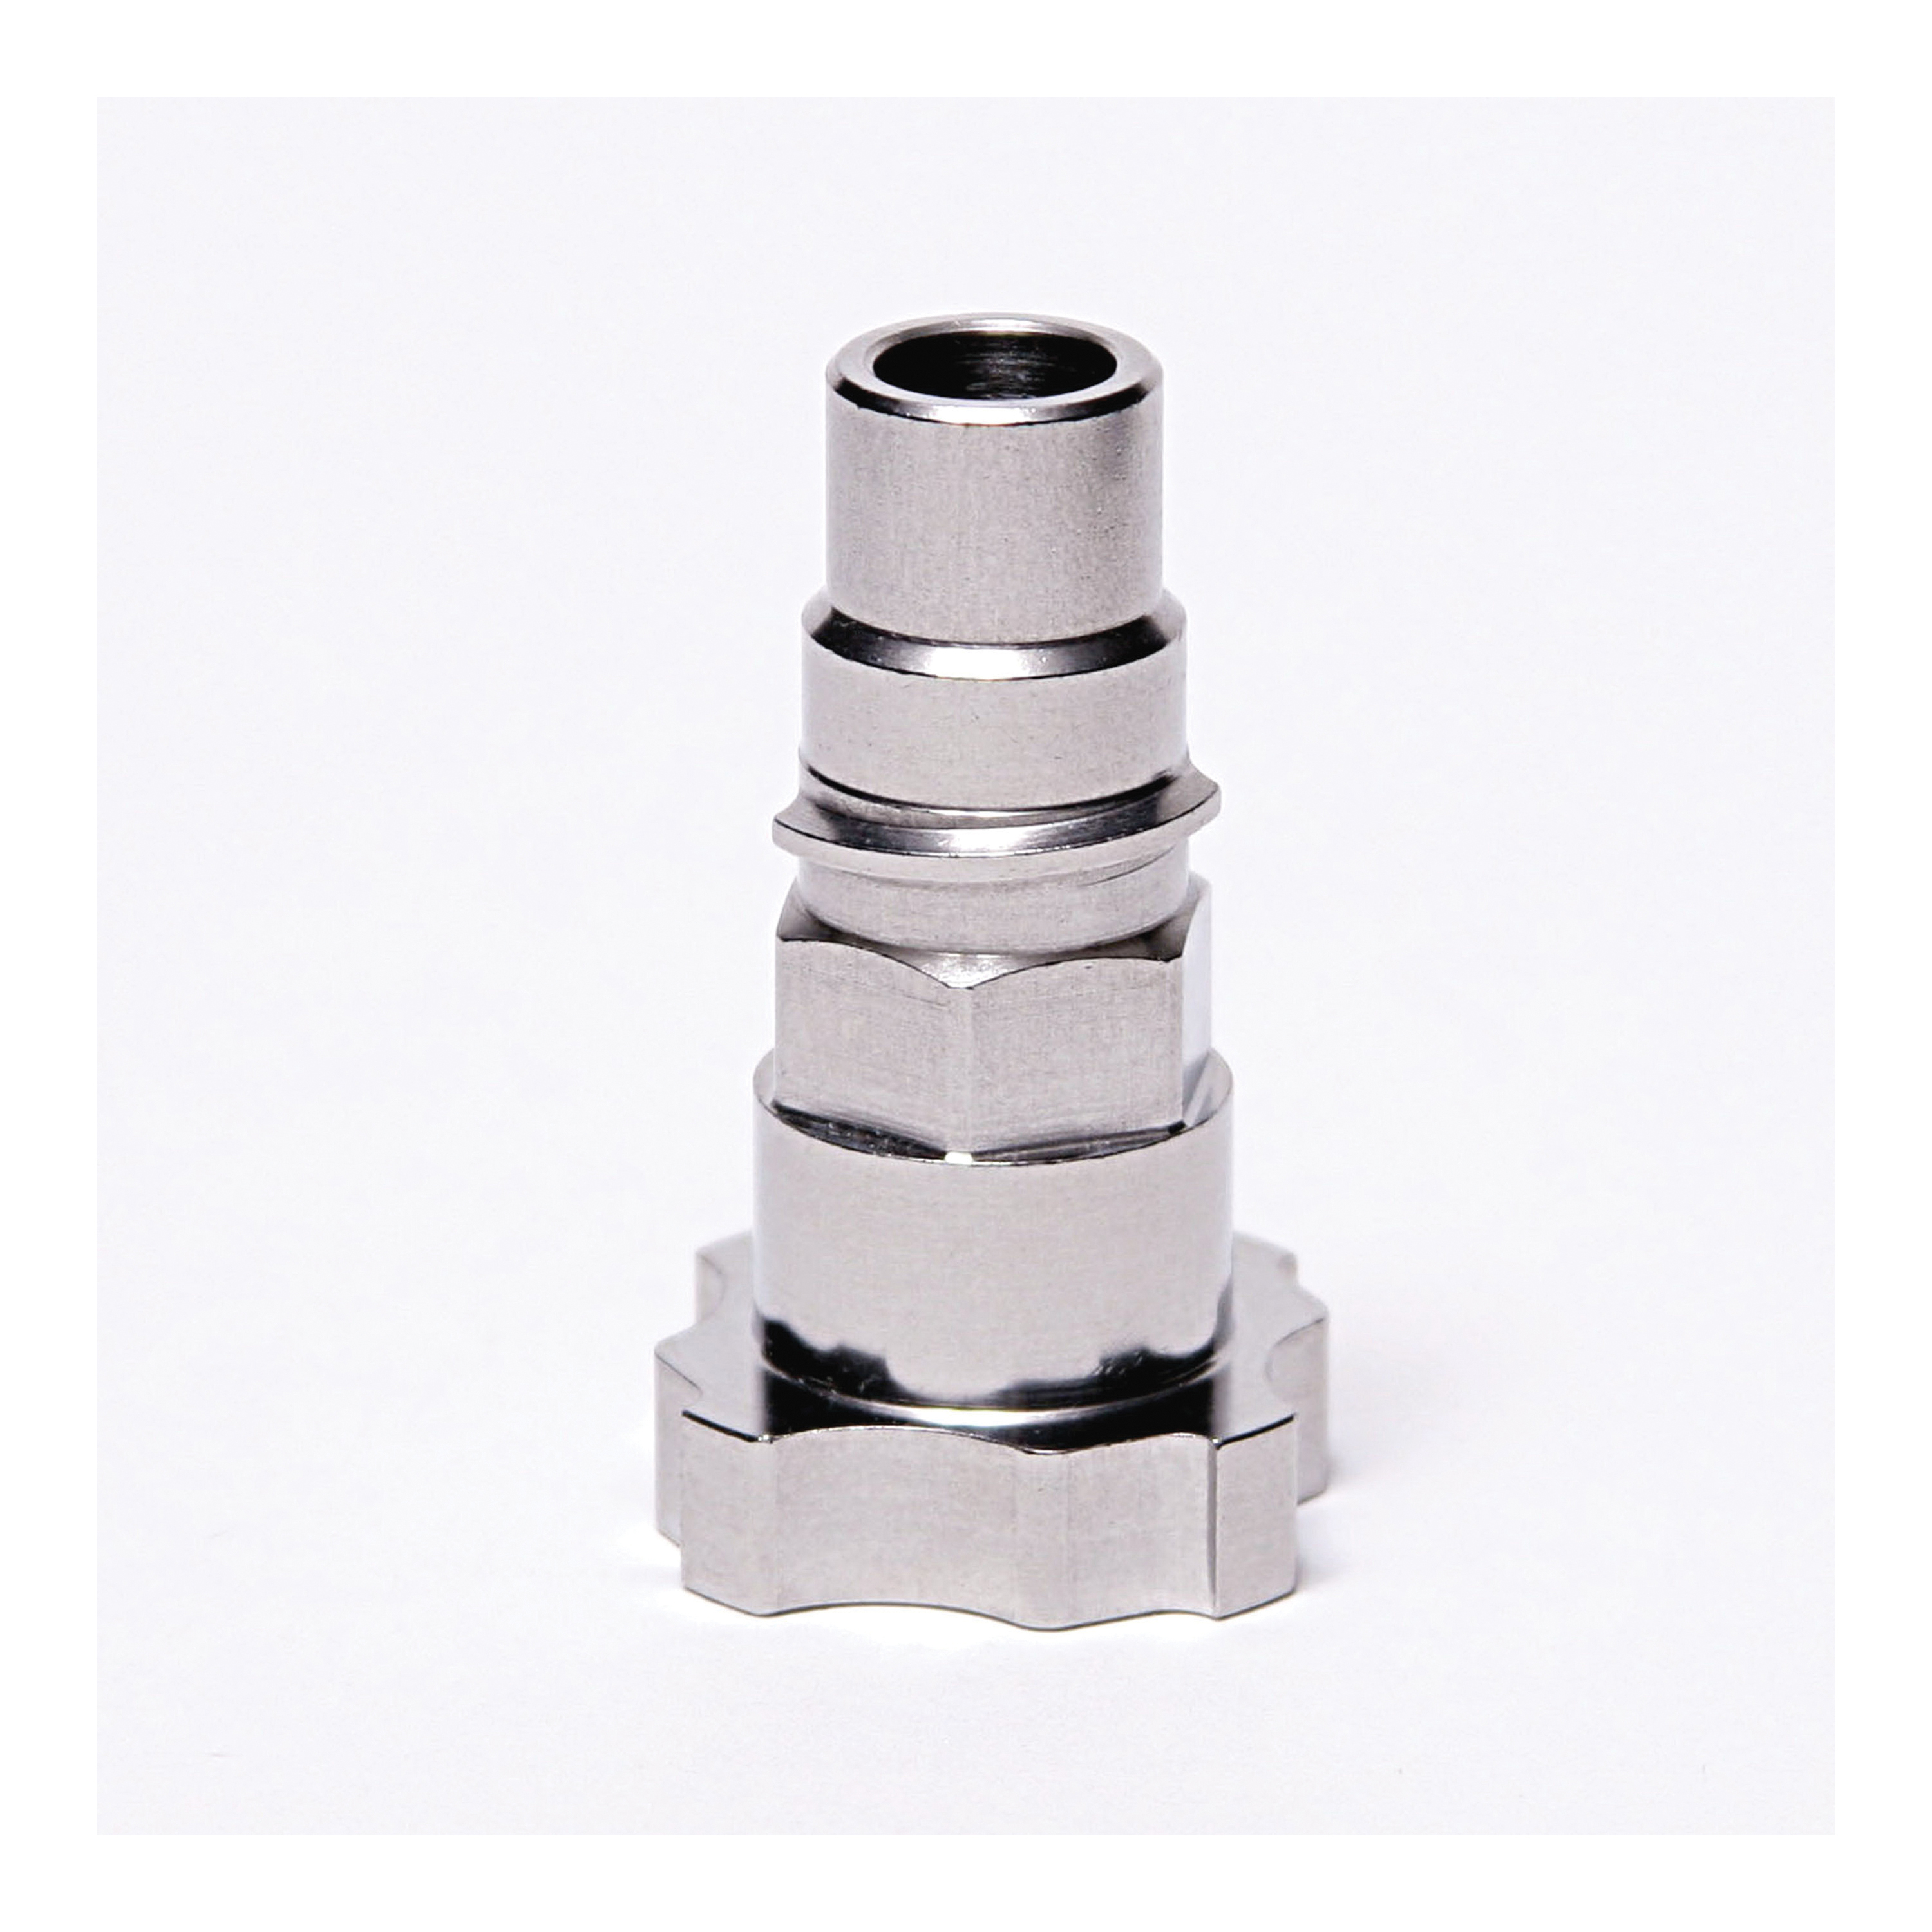 3M™ PPS™ 051131-16122 Midi Cup and Collar, 400 mL Container, For Use With 3M™ PPS™ Paint Preparation System